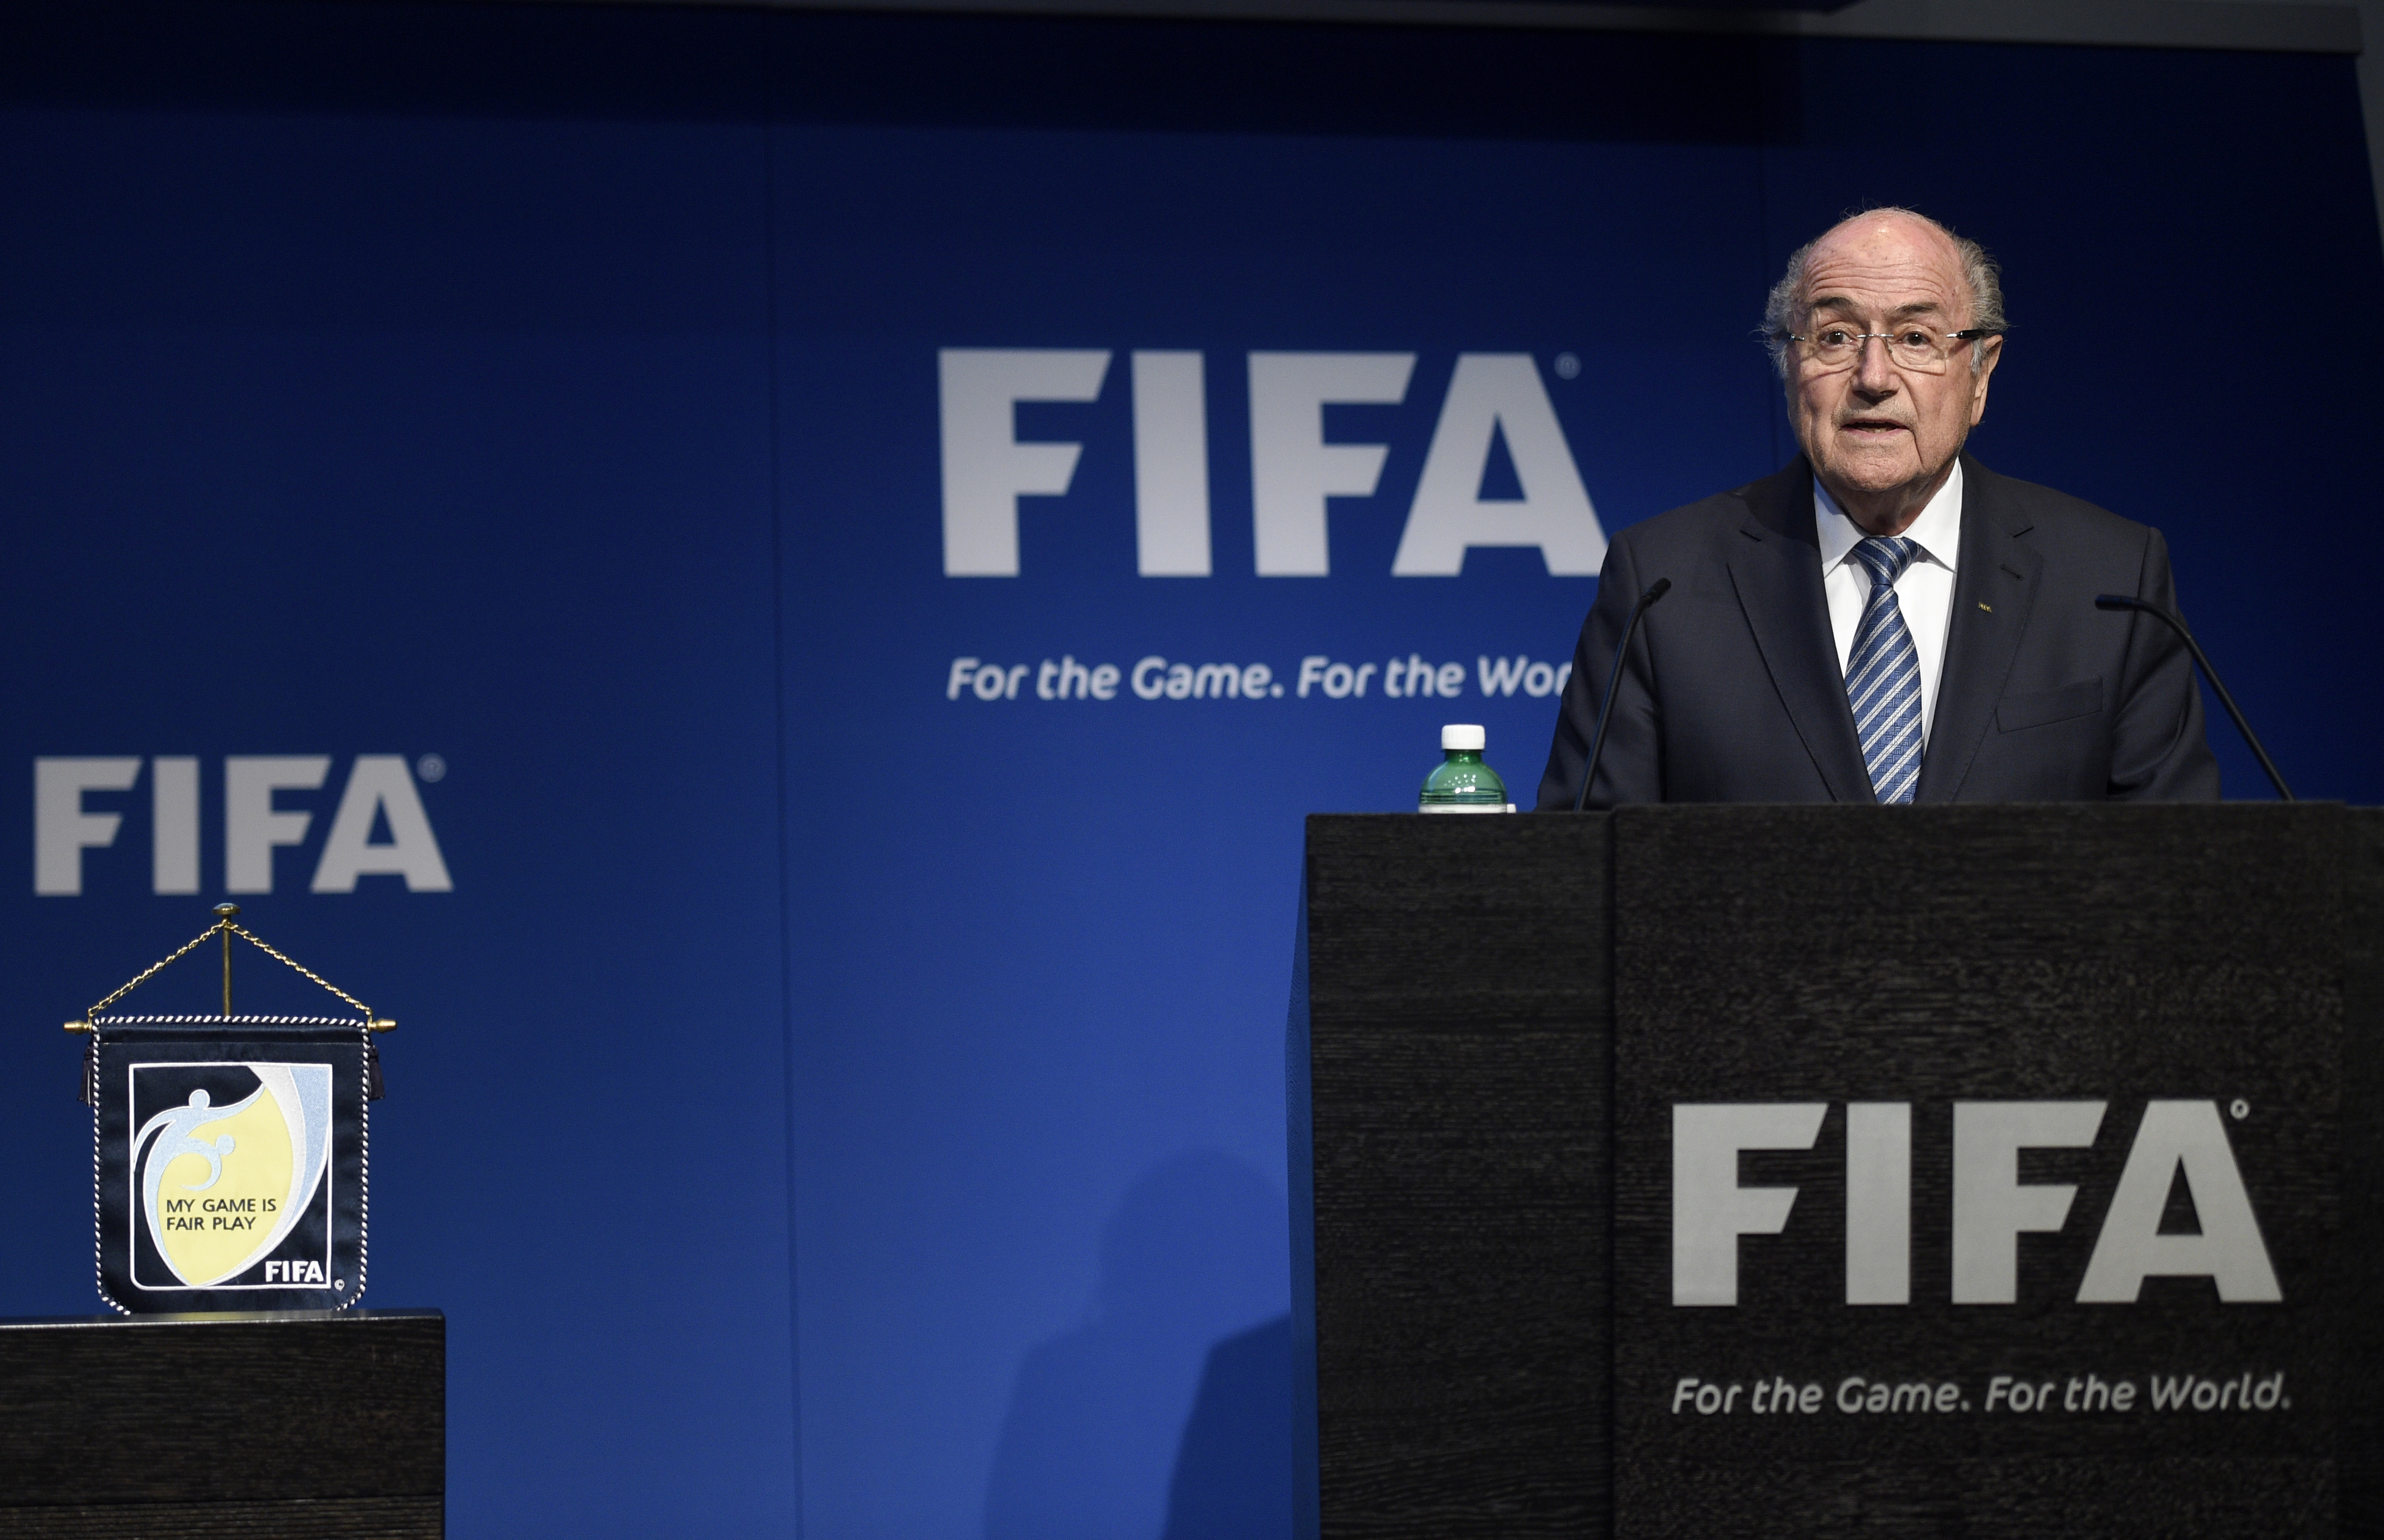 FIFA President Joseph Blatter speaks at a press conference in which he announced that he will resign the office, June 2, 2015 in Zurich.